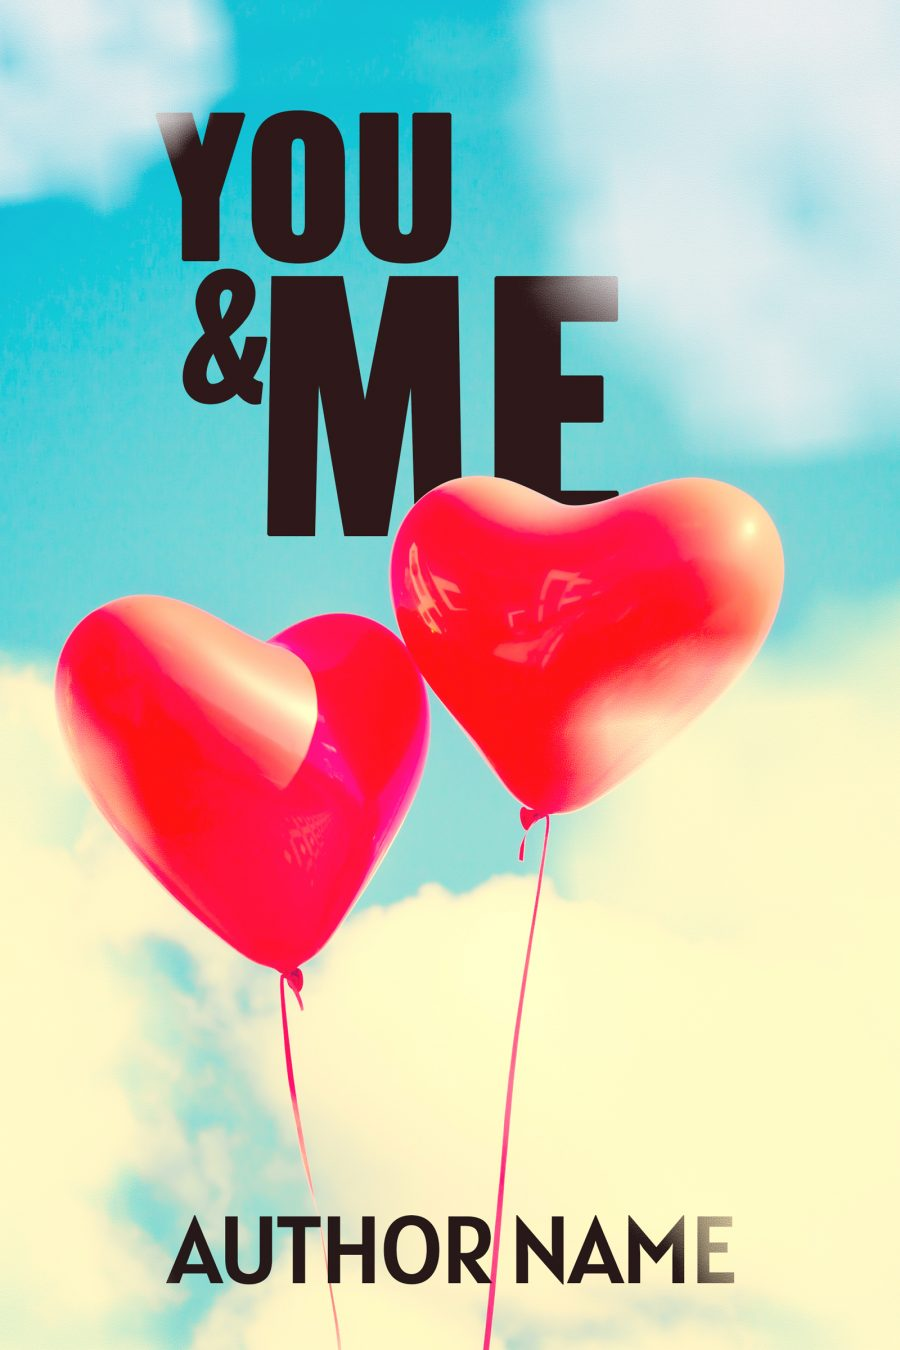 You & Me by Poras's Designs